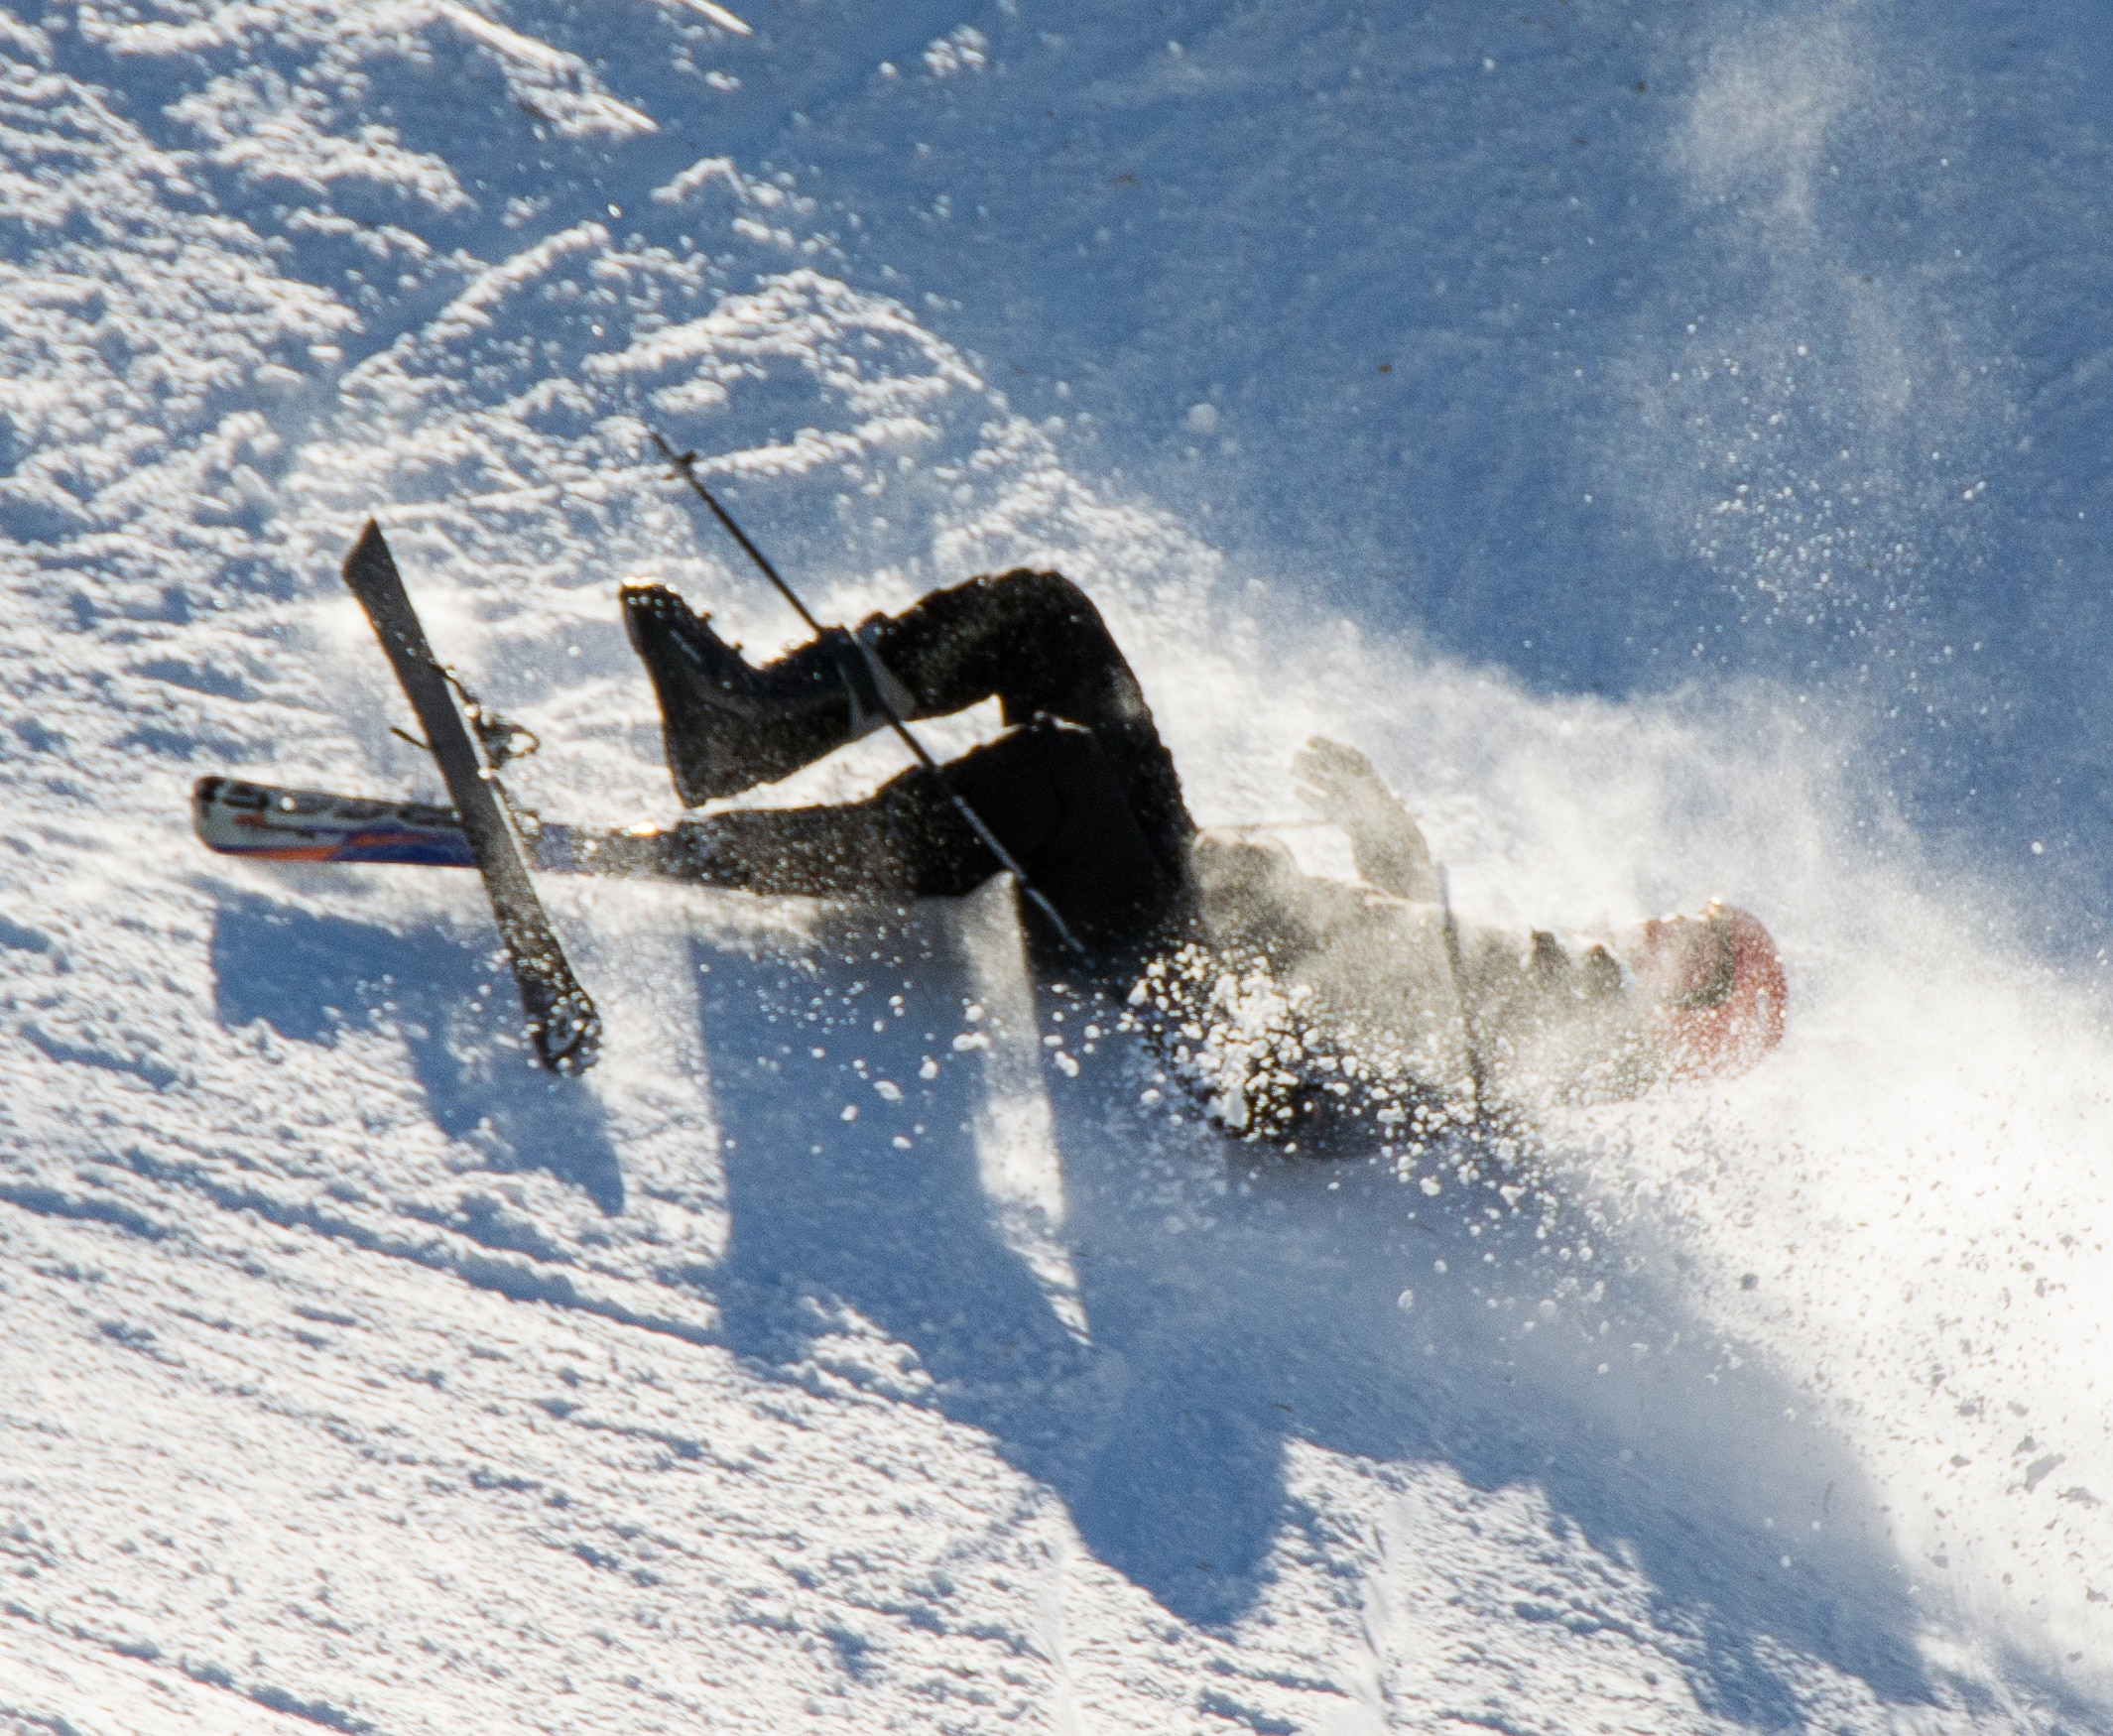 Skier fell during the descent